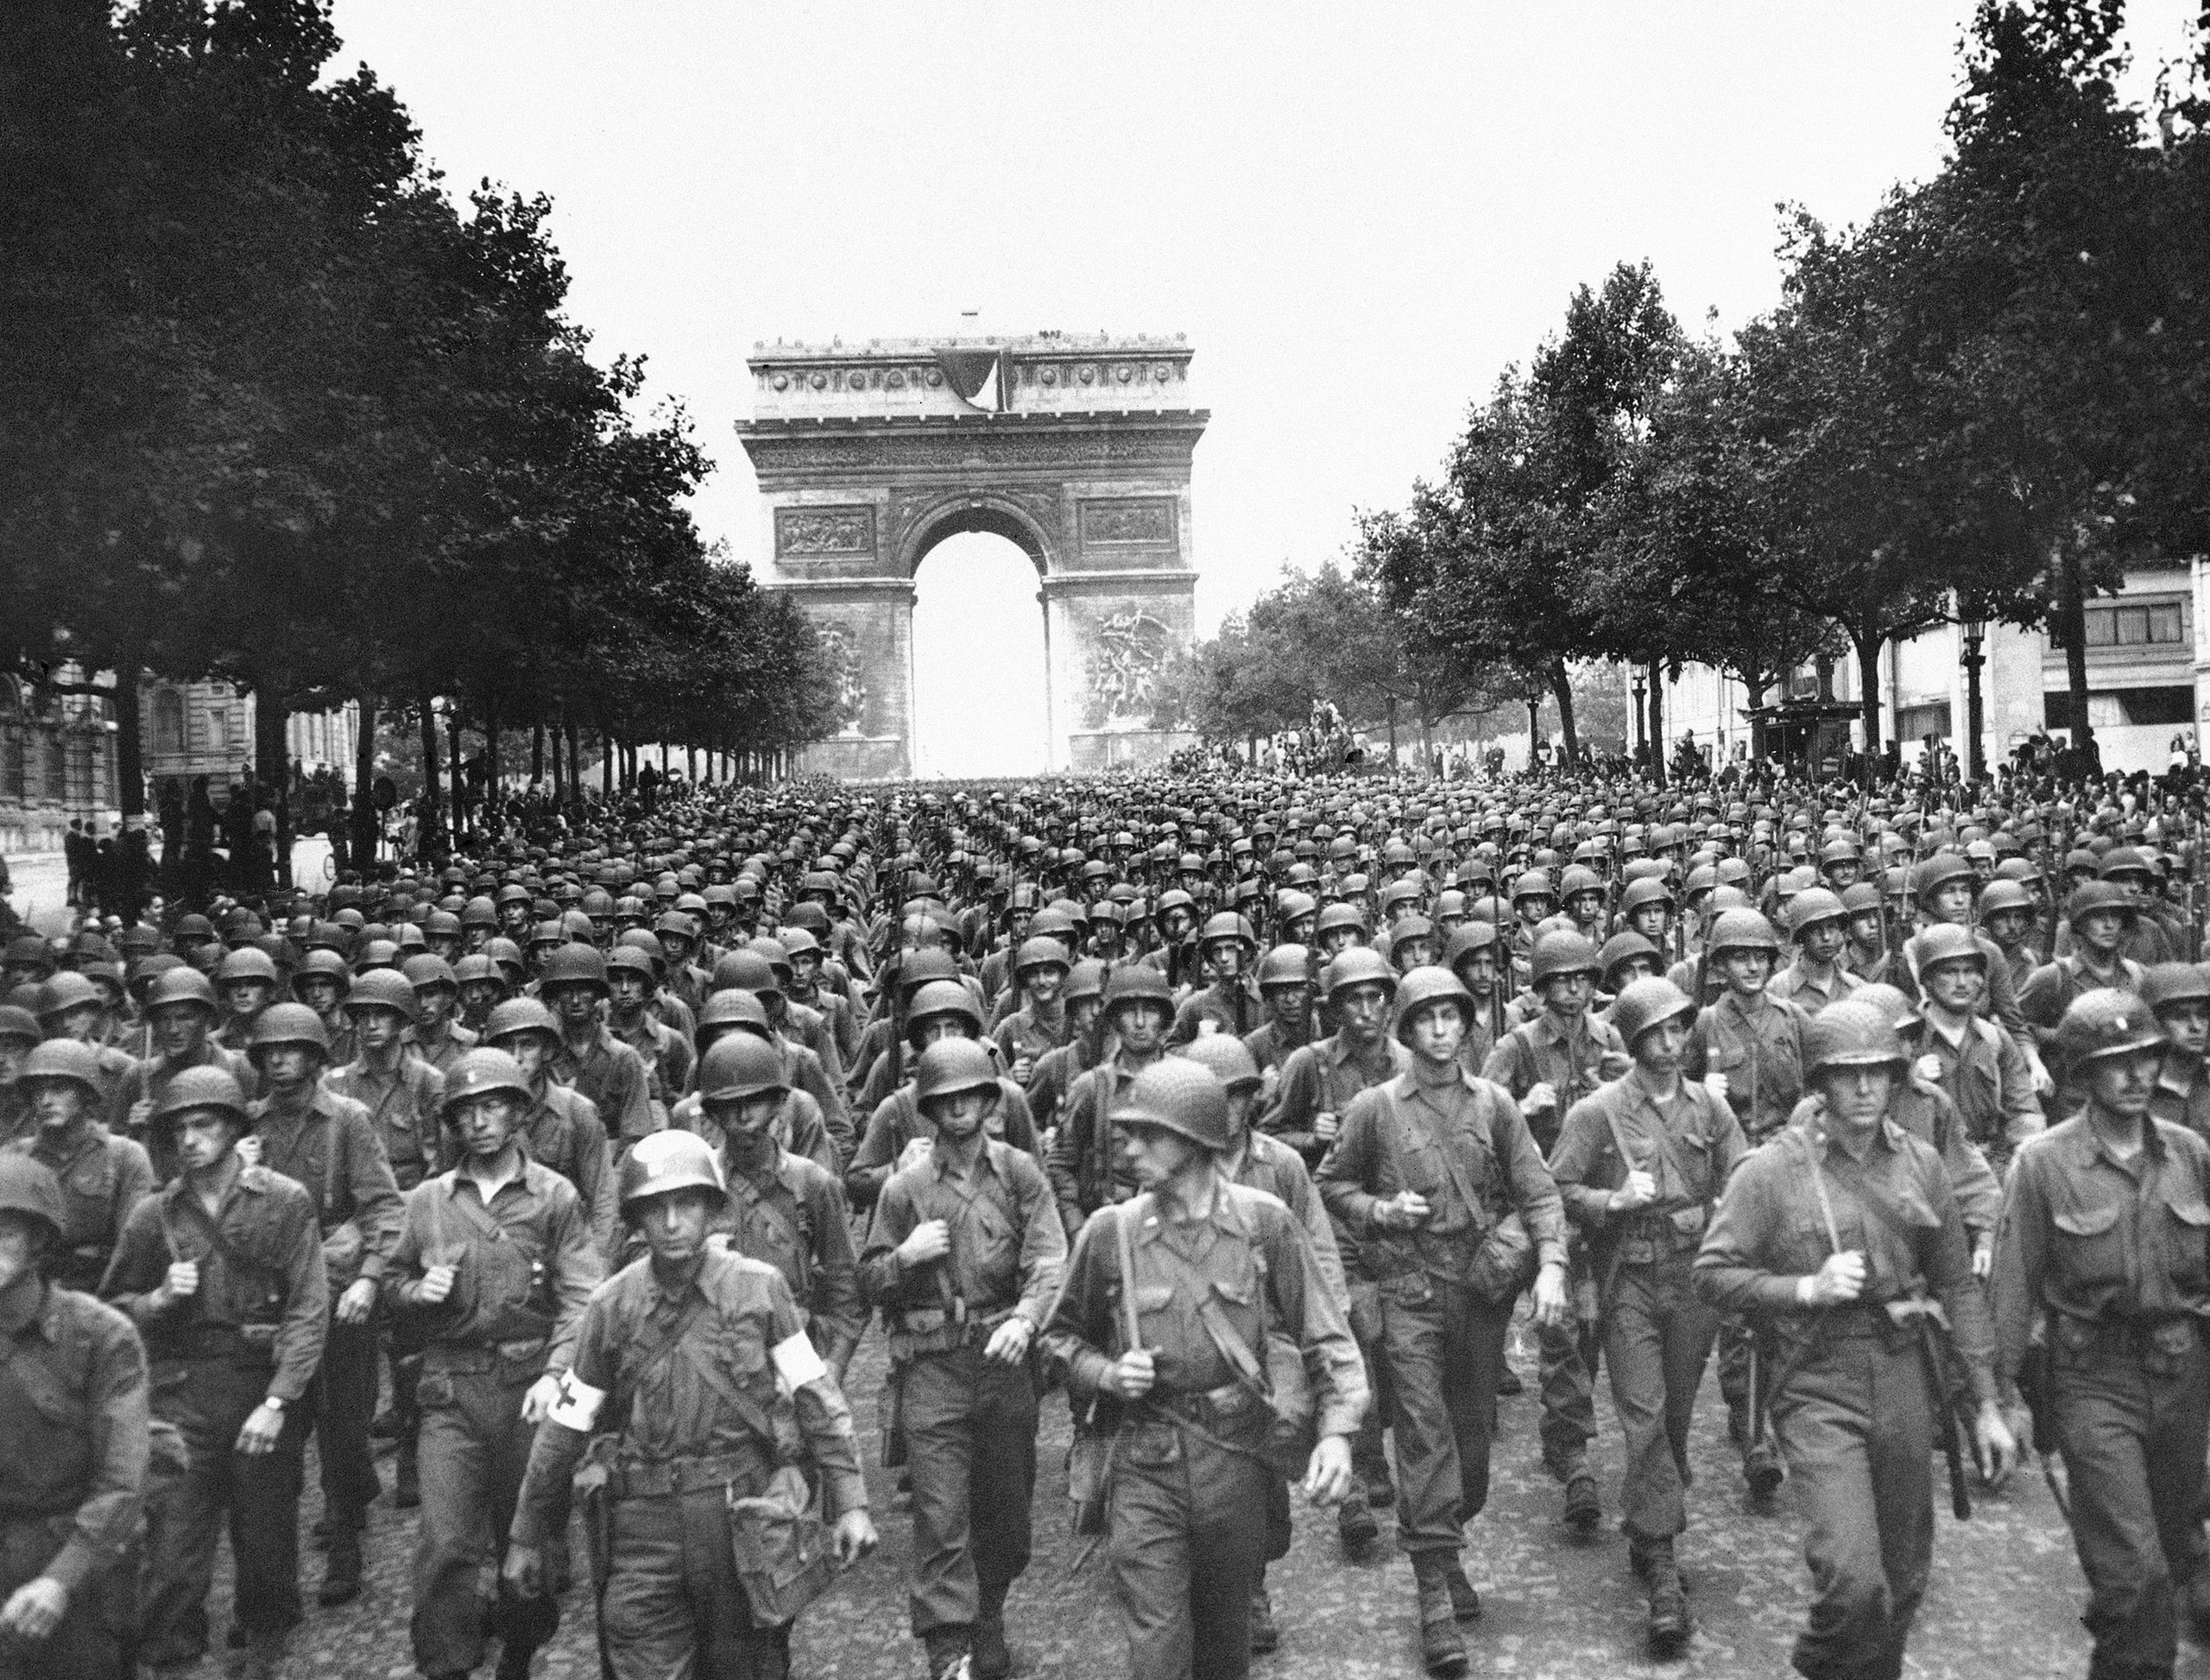 U.S. soldiers of Pennsylvania's 28th Infantry Division march along the Champs Elysees, the Arc de Triomphe in the background, on Aug. 29, 1944, four days after the liberation of Paris during WWII.